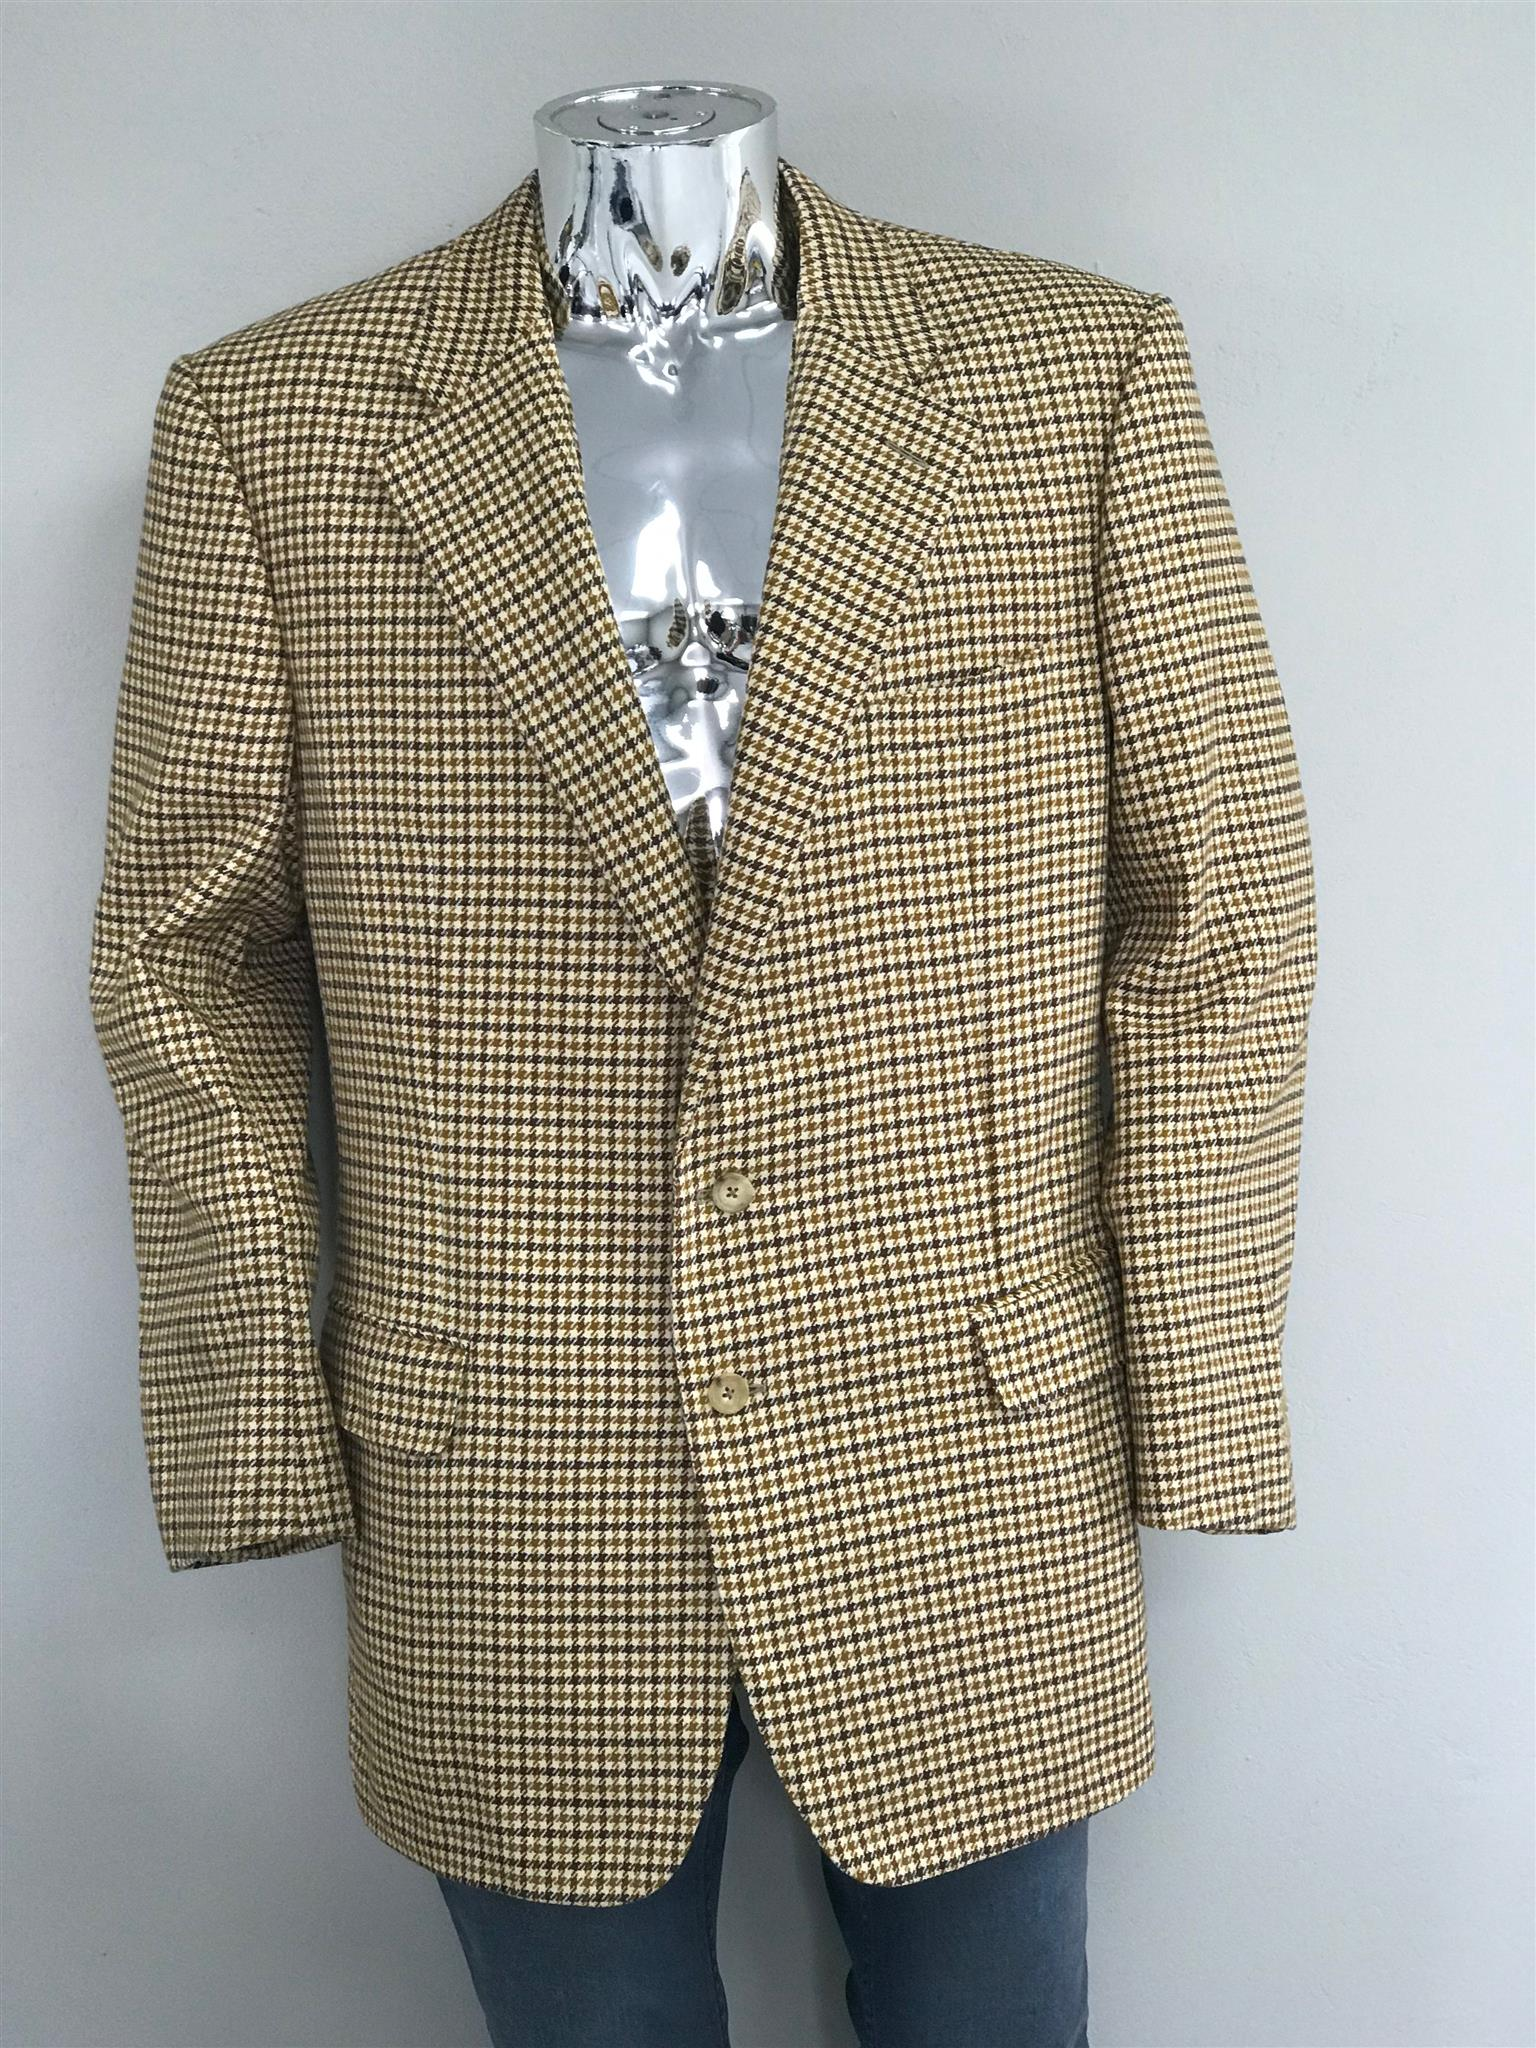 Men's Tweed Jackets - Second Hand Bales for resale. Was R590 now R450. While stocks last.